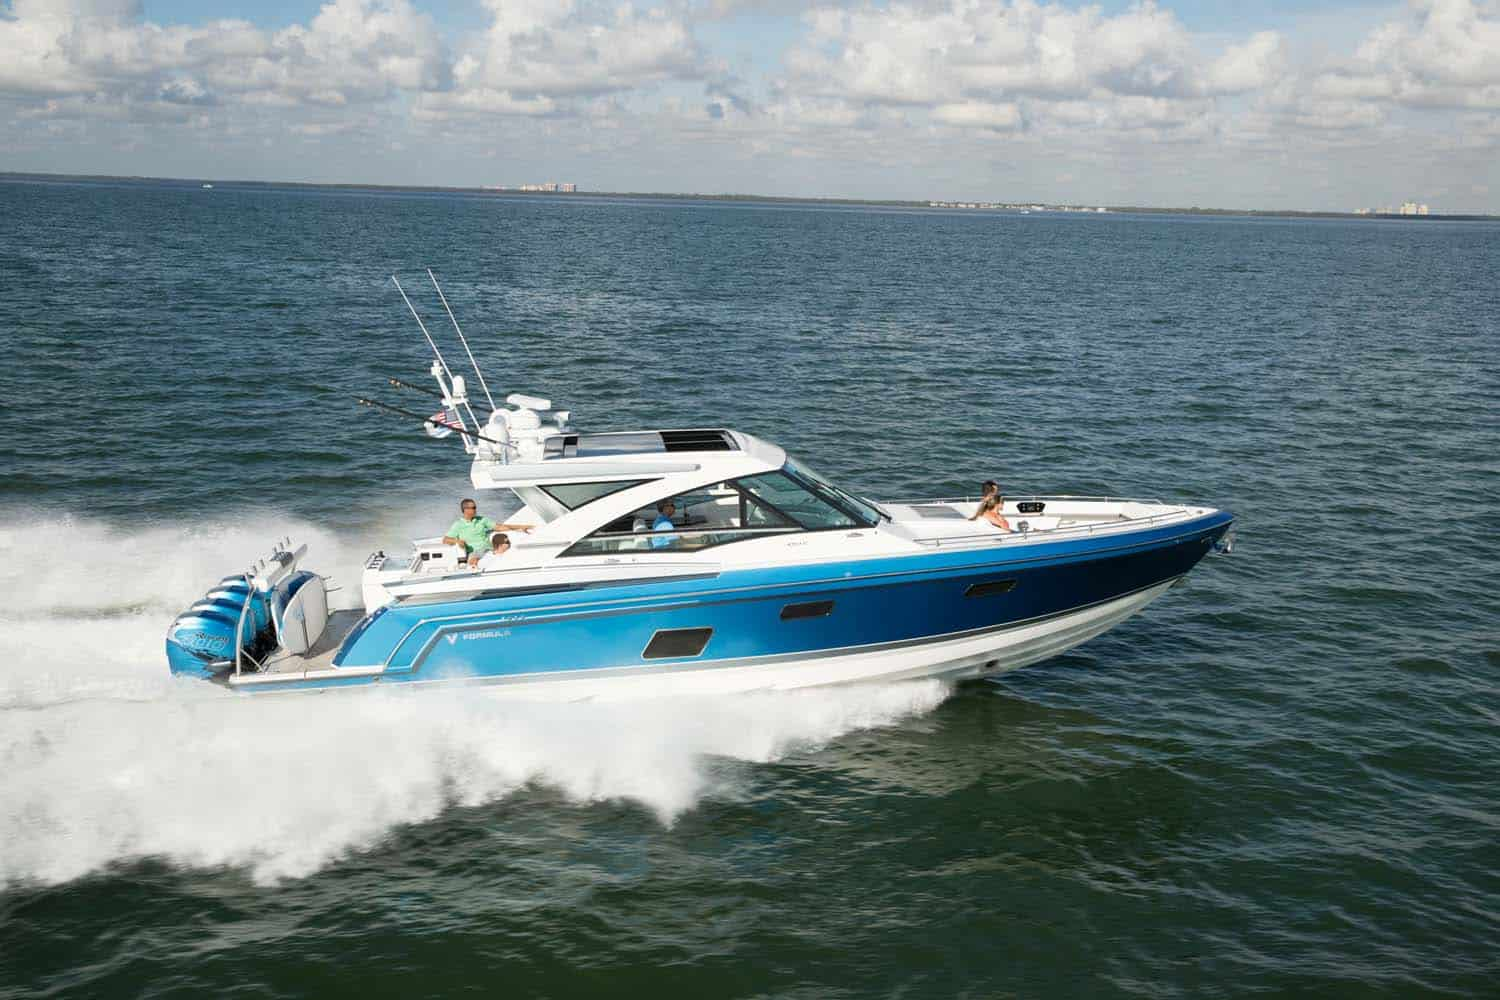 An image of the 430 All Sport Crossover boat on the ocean for better understanding of the model visually.